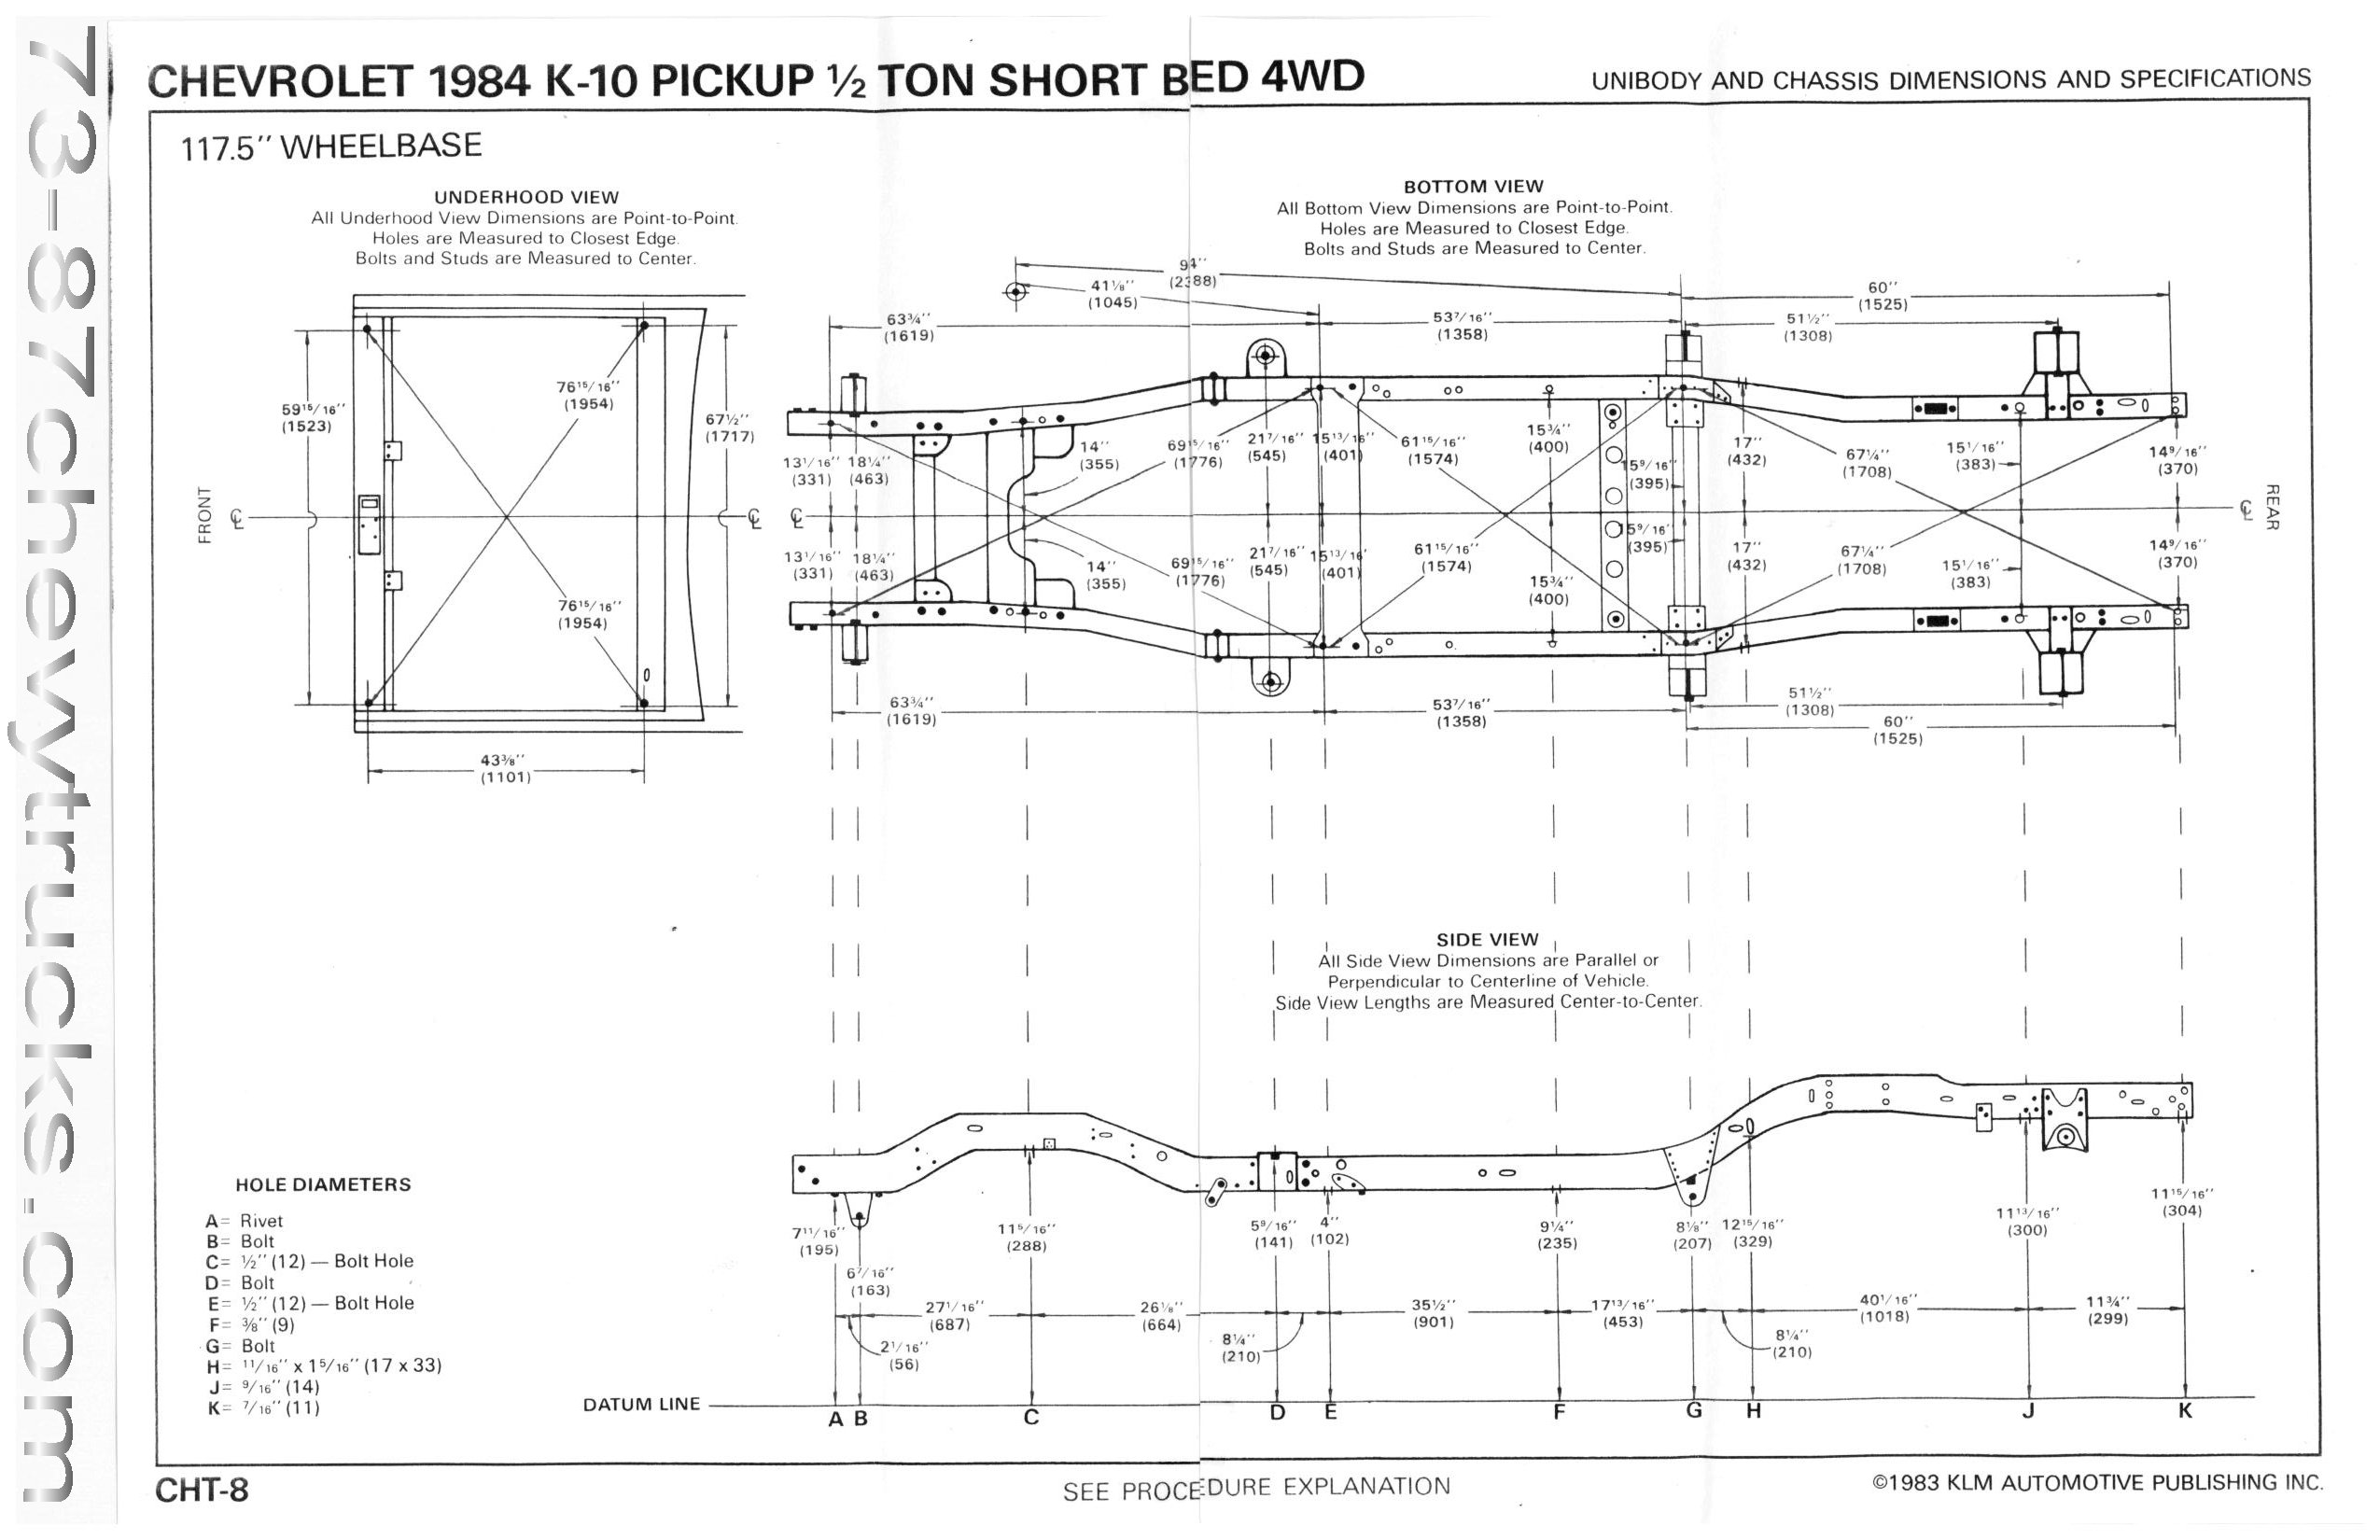 Chis_dim6  Chevelle Wiring Diagram on 73 chevelle heater diagram, 73 chevelle seats, 72 chevelle wiring diagram, 70 chevelle wiring diagram, 71 chevelle wiring diagram,